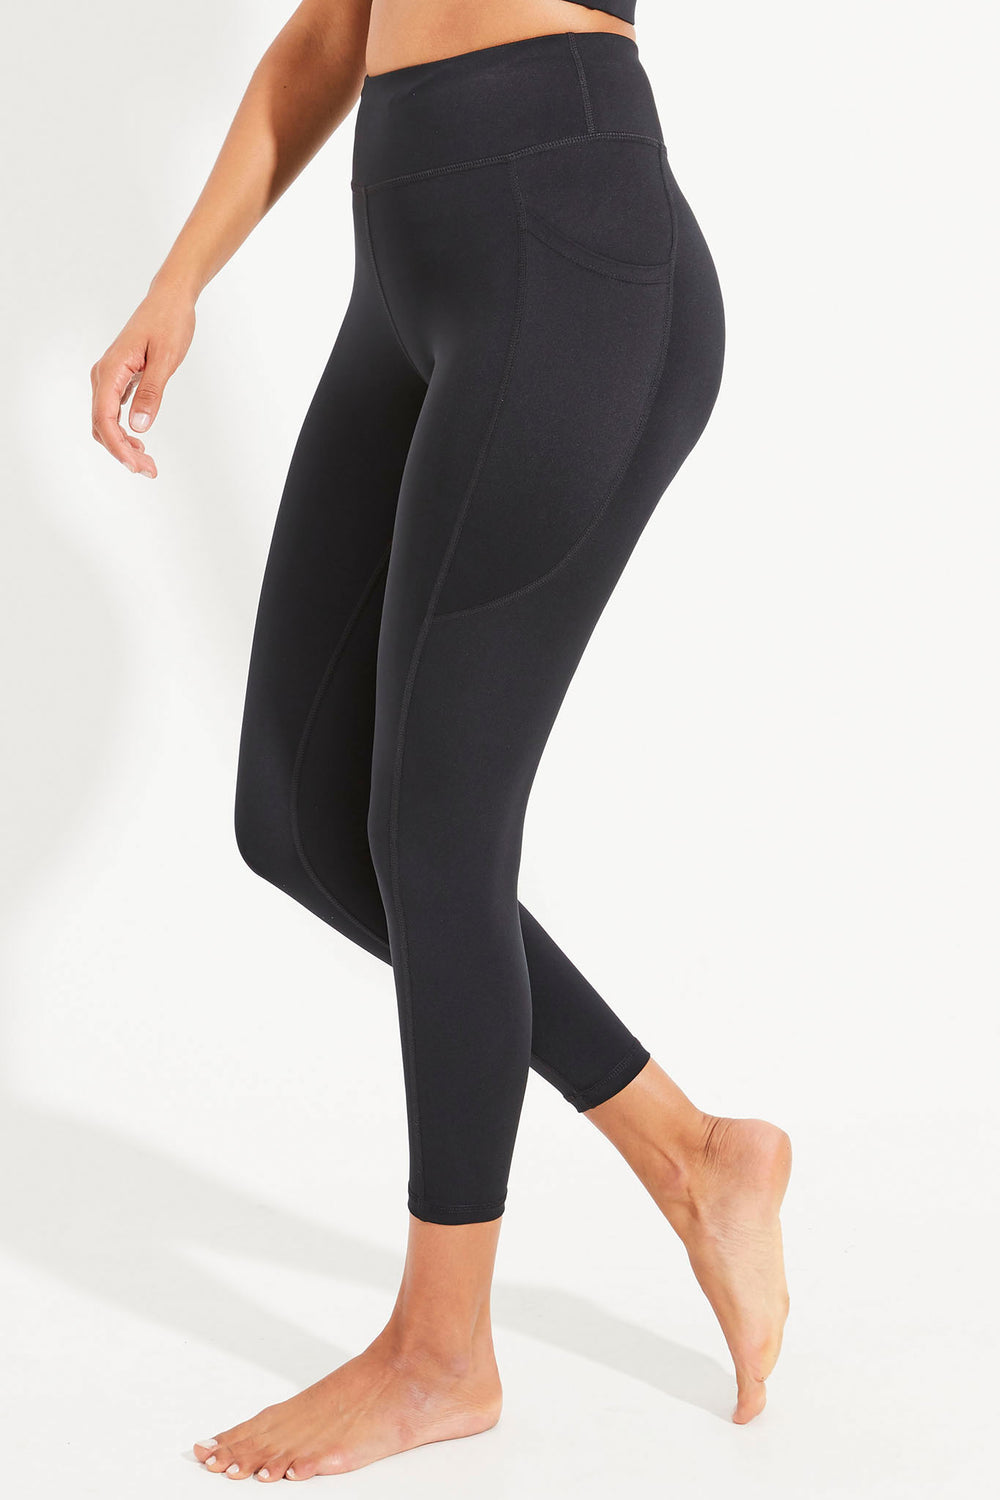 Motion Legging 7/8 - Black